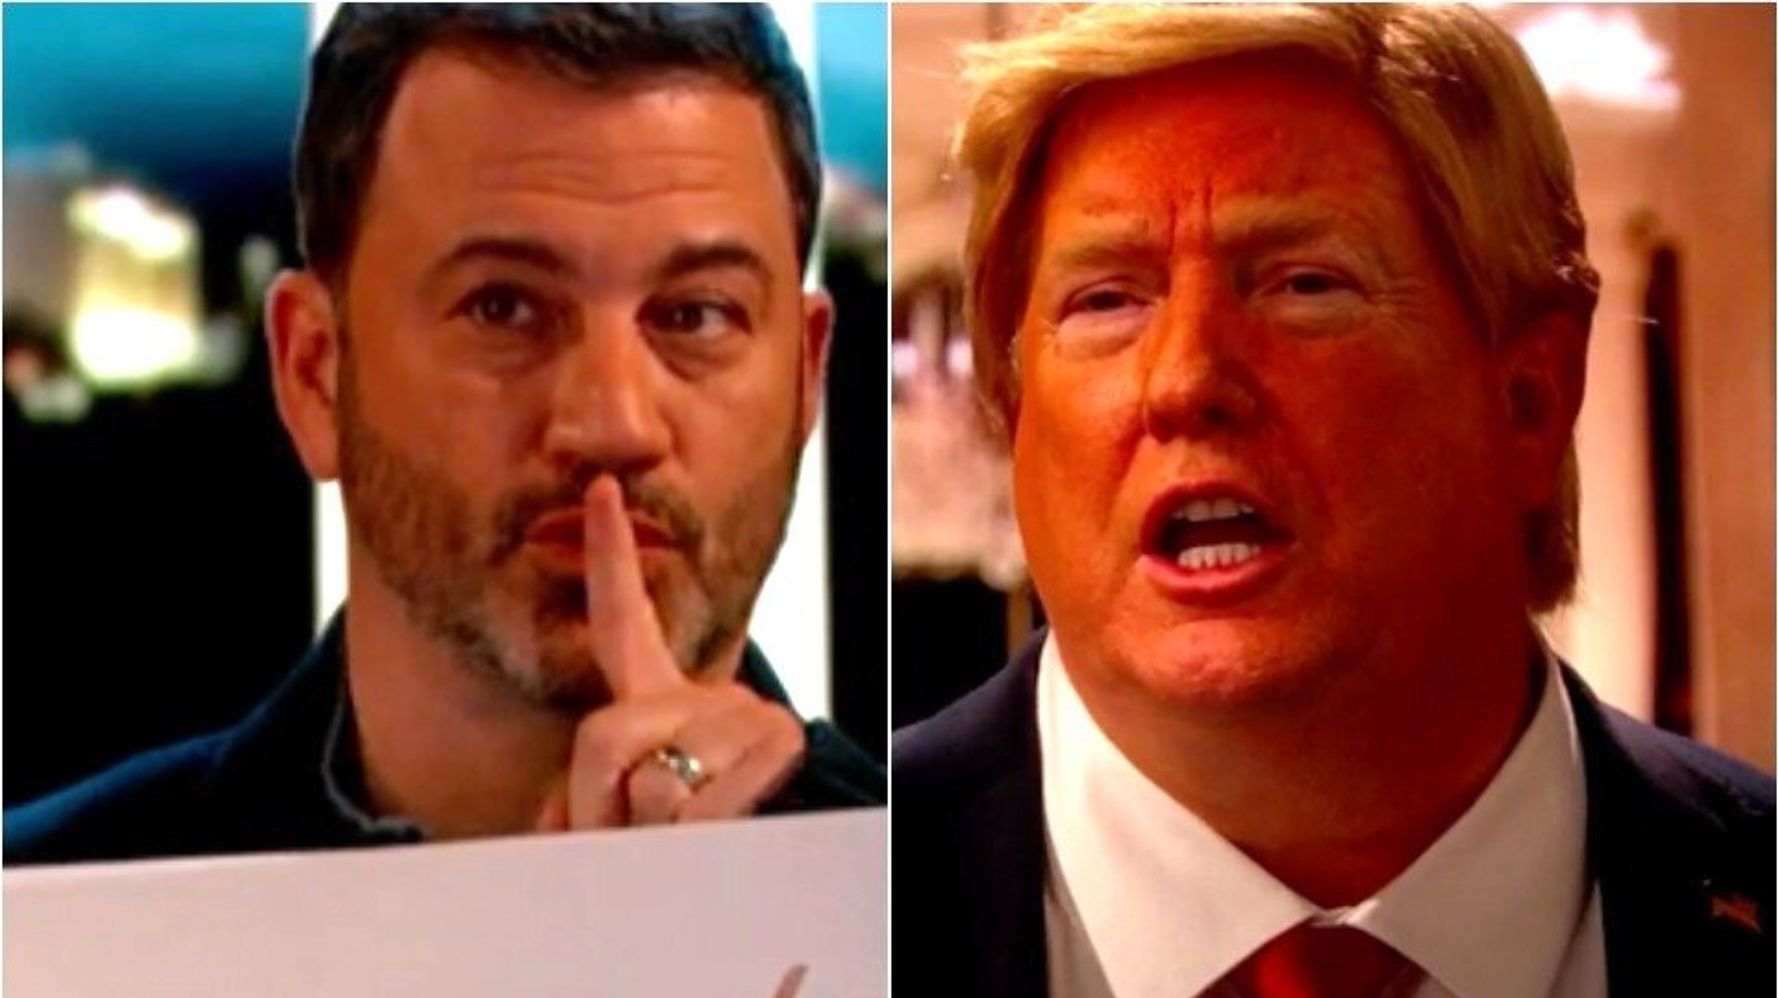 Jimmy Kimmel Shows Donald Trump Exactly How He Feels In Spoof 'Love Actually' Scene